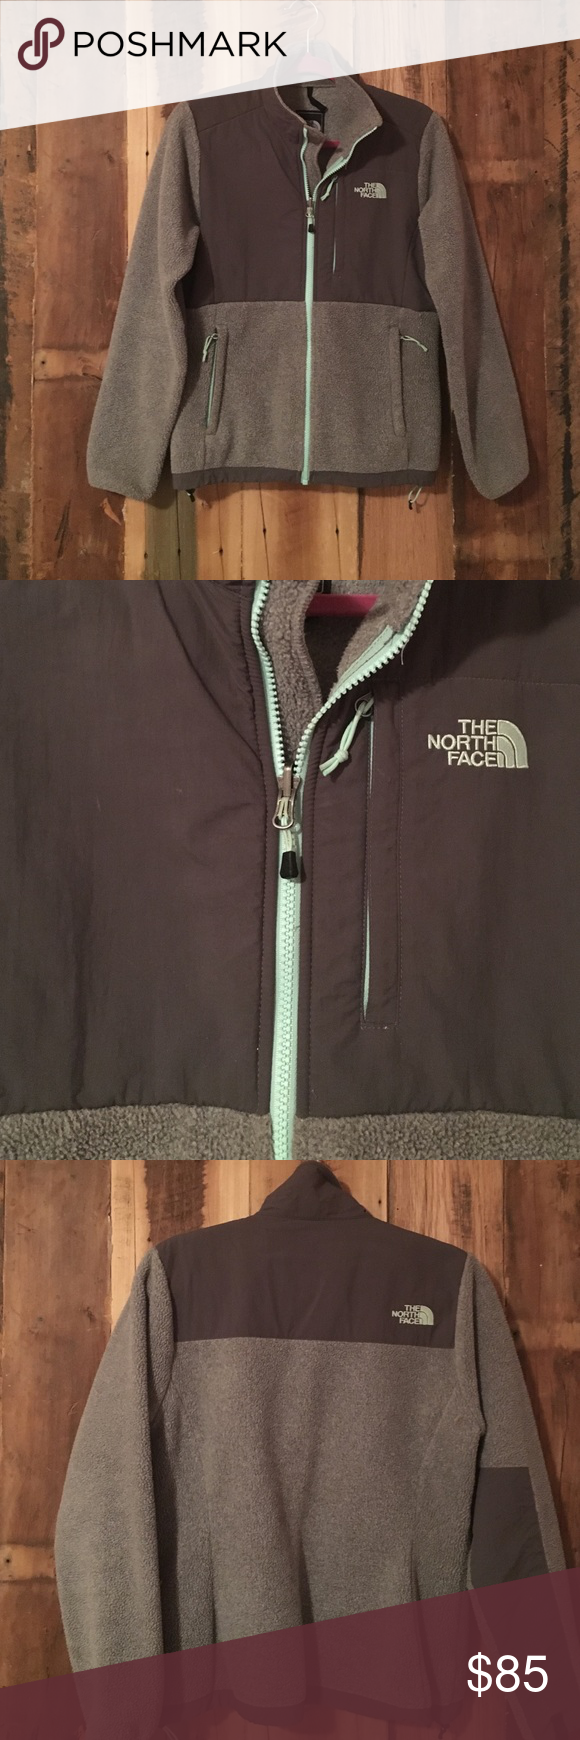 Great condition Denali north face jacket Mint green zipper, worn a handful of times. Very cute jacket! North Face Jackets & Coats